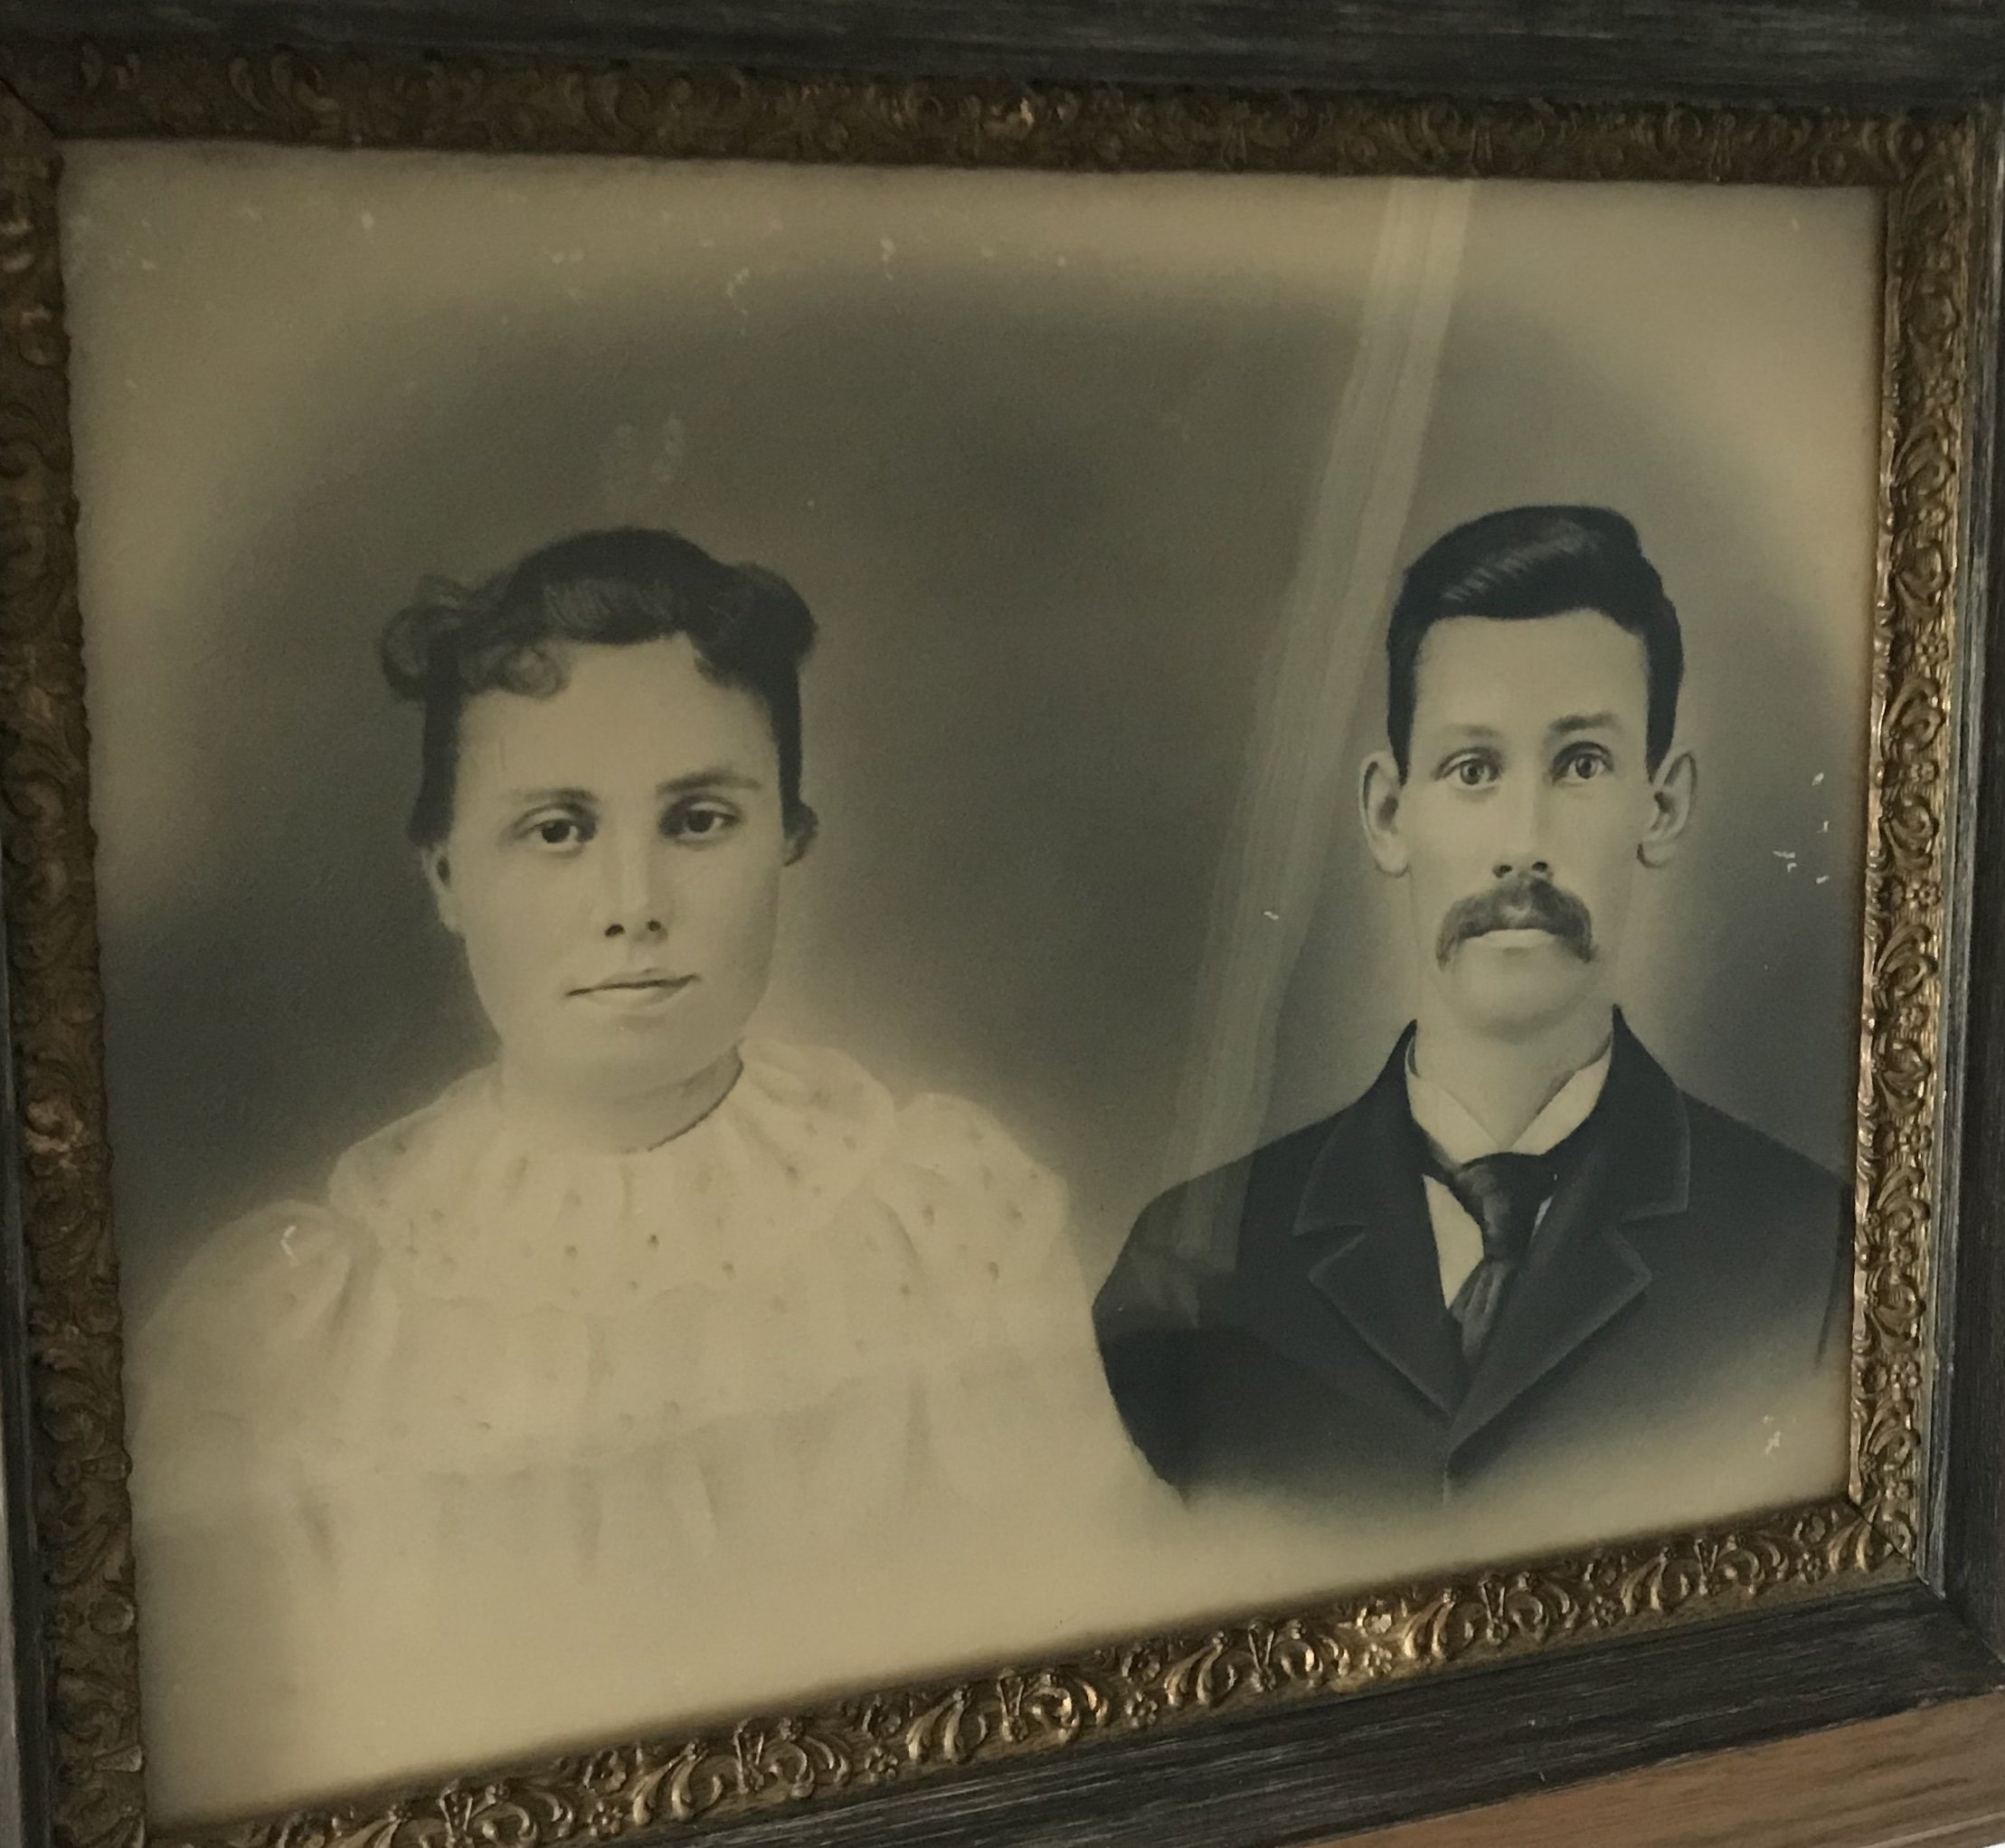 Pictured above is two members of the Kincaid family. Their names are James Daniel Kincaid and Fannie Kincaid. They spent their entire lives on the Kincaid farm.